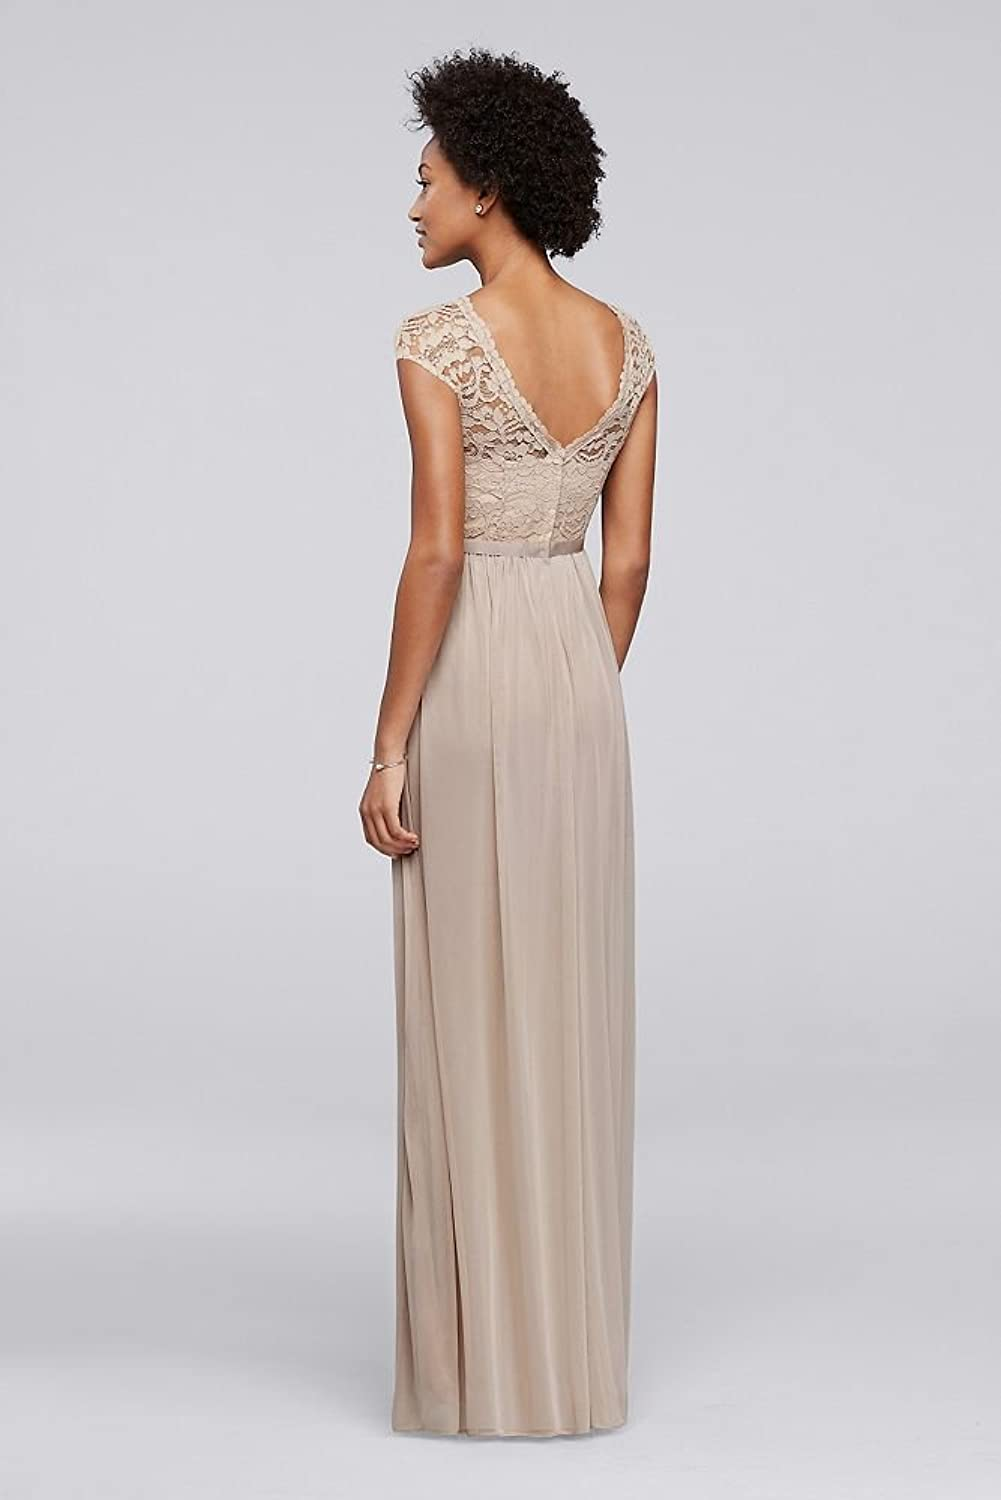 Davids bridal extra length long bridesmaid dress with ribbon davids bridal extra length long bridesmaid dress with ribbon waist style 4xlf19328 at amazon womens clothing store ombrellifo Image collections